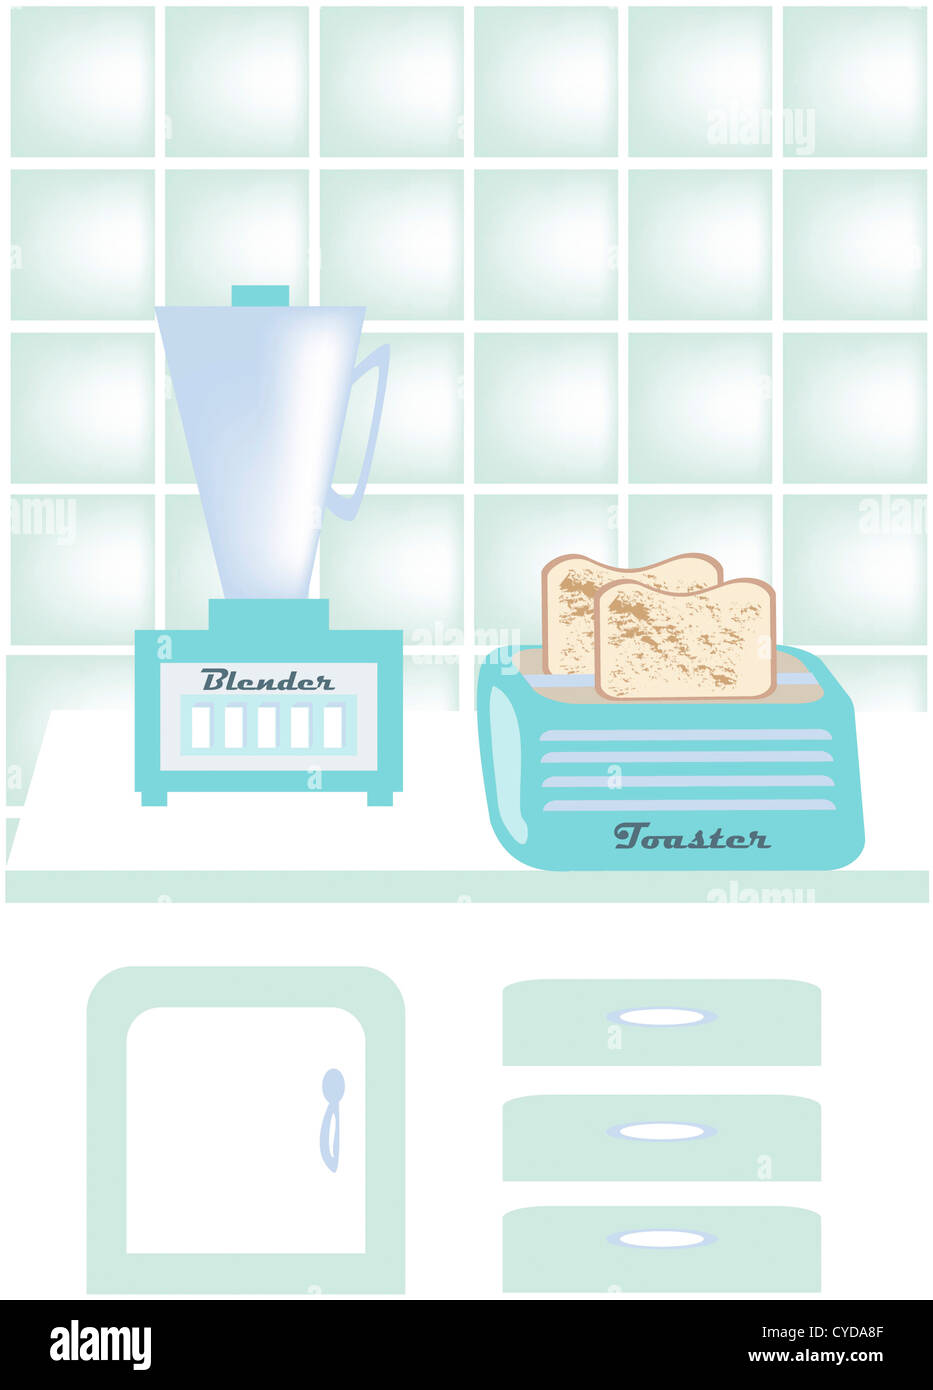 Illustrated 1950's Kitchen Appliances - Stock Image